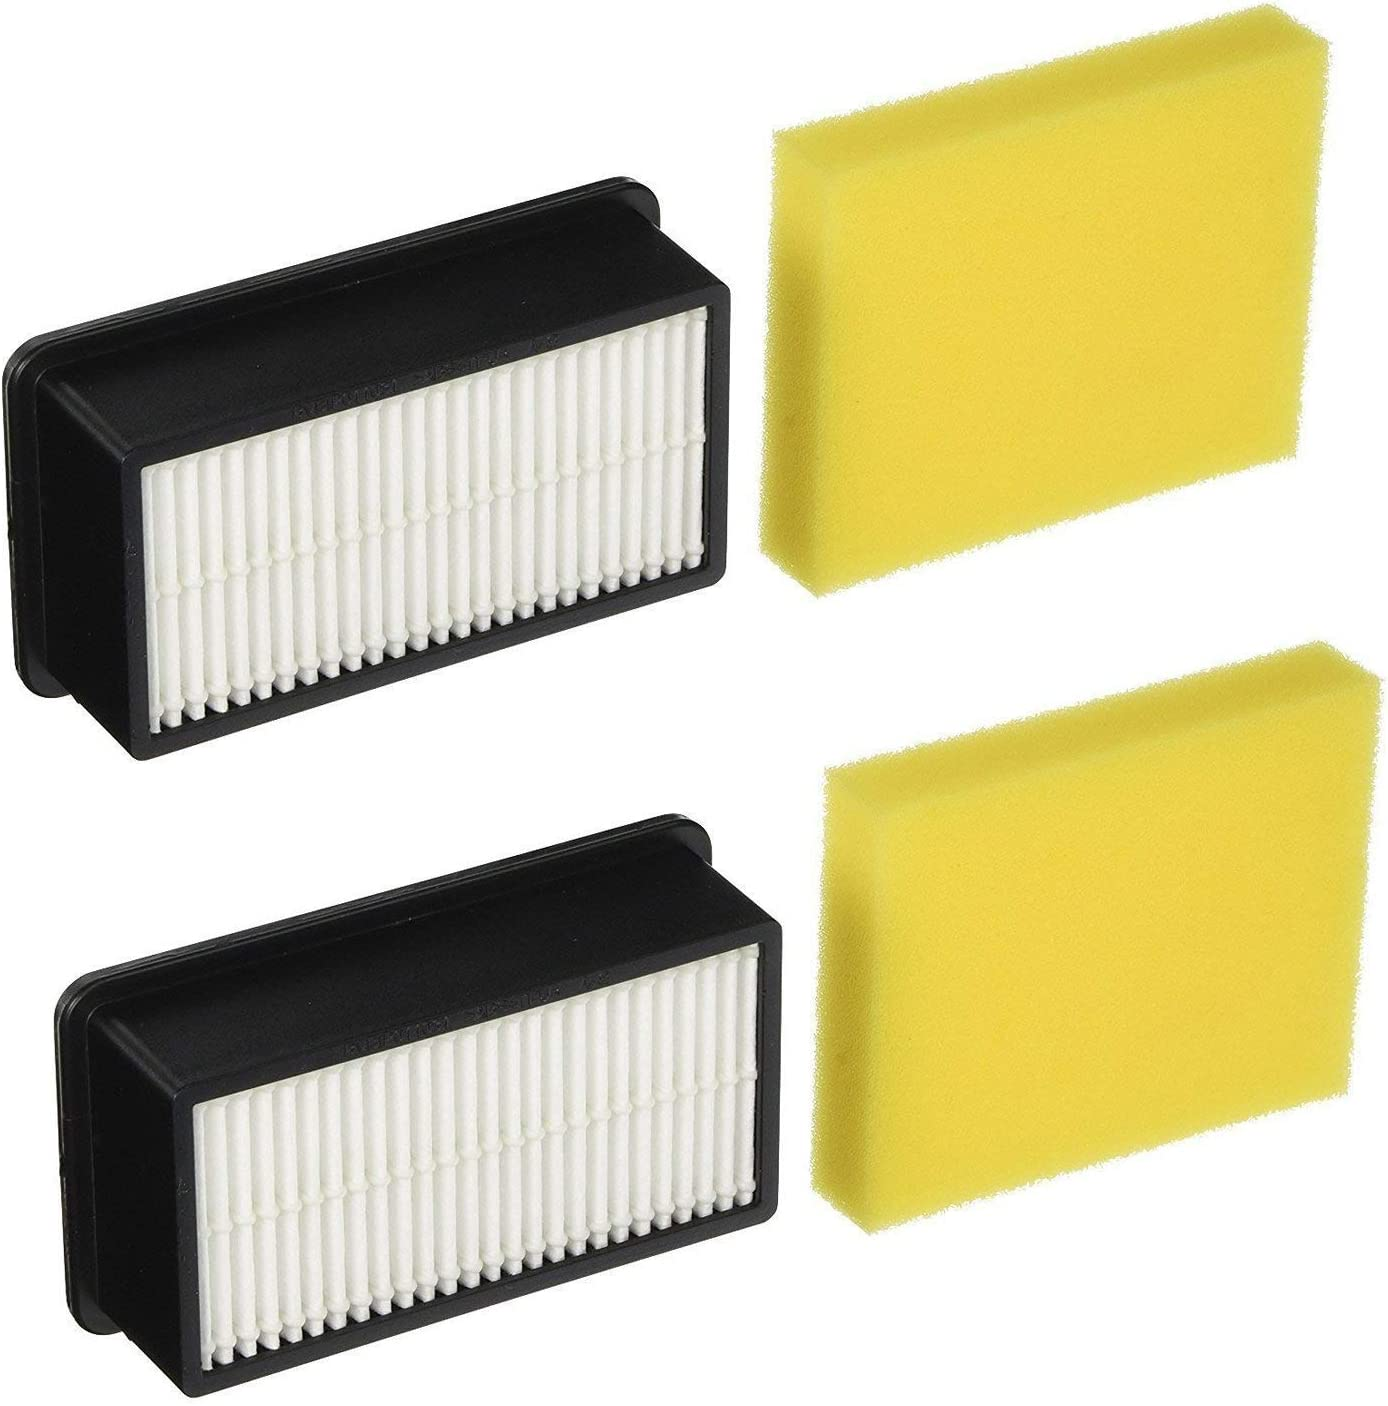 Colorfullife 2 + 2 Pack Style 1008 Filter for Bissell CleanView Upright Vacuums 9595A, 1819, 1822, 1825, 1831, 1330, 1332. 2 Pre-Motor Foam Filter and 2 Post-Motor Filter